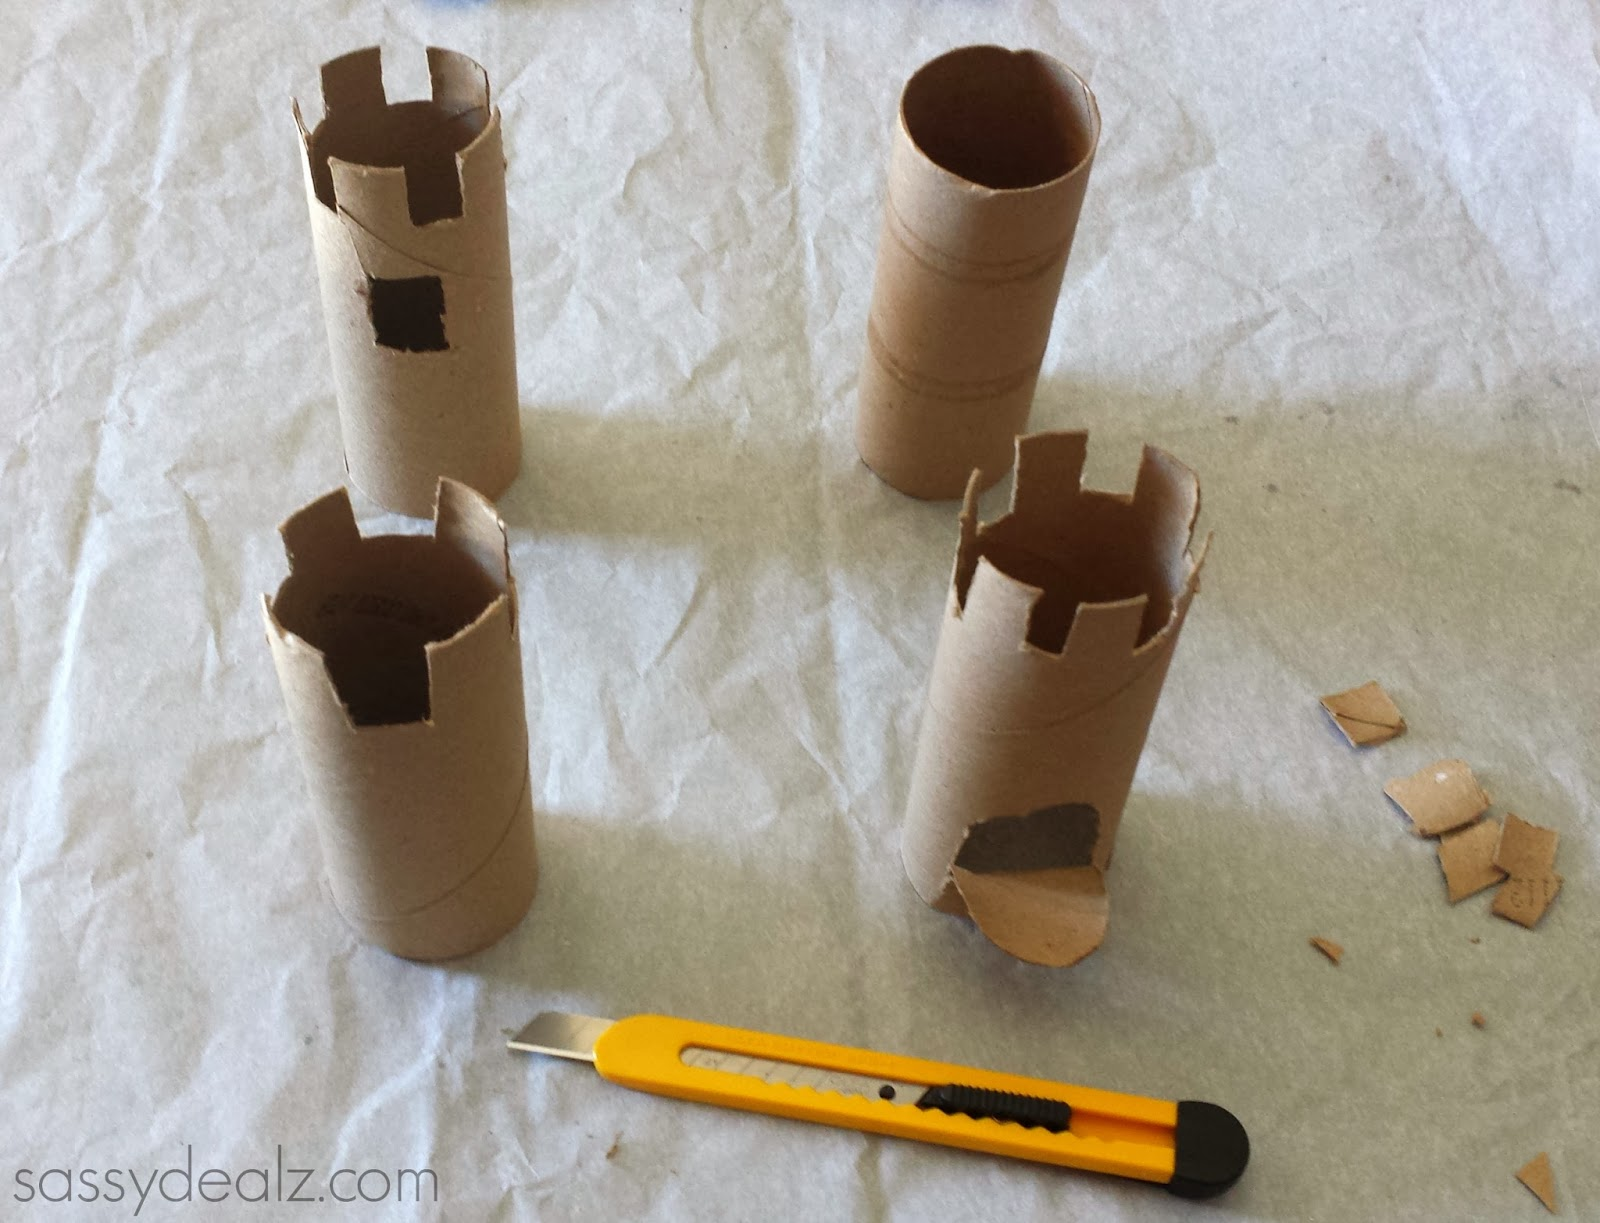 Toilet paper roll castles craft idea for kids crafty morning cut toilet paper roll castles jeuxipadfo Choice Image